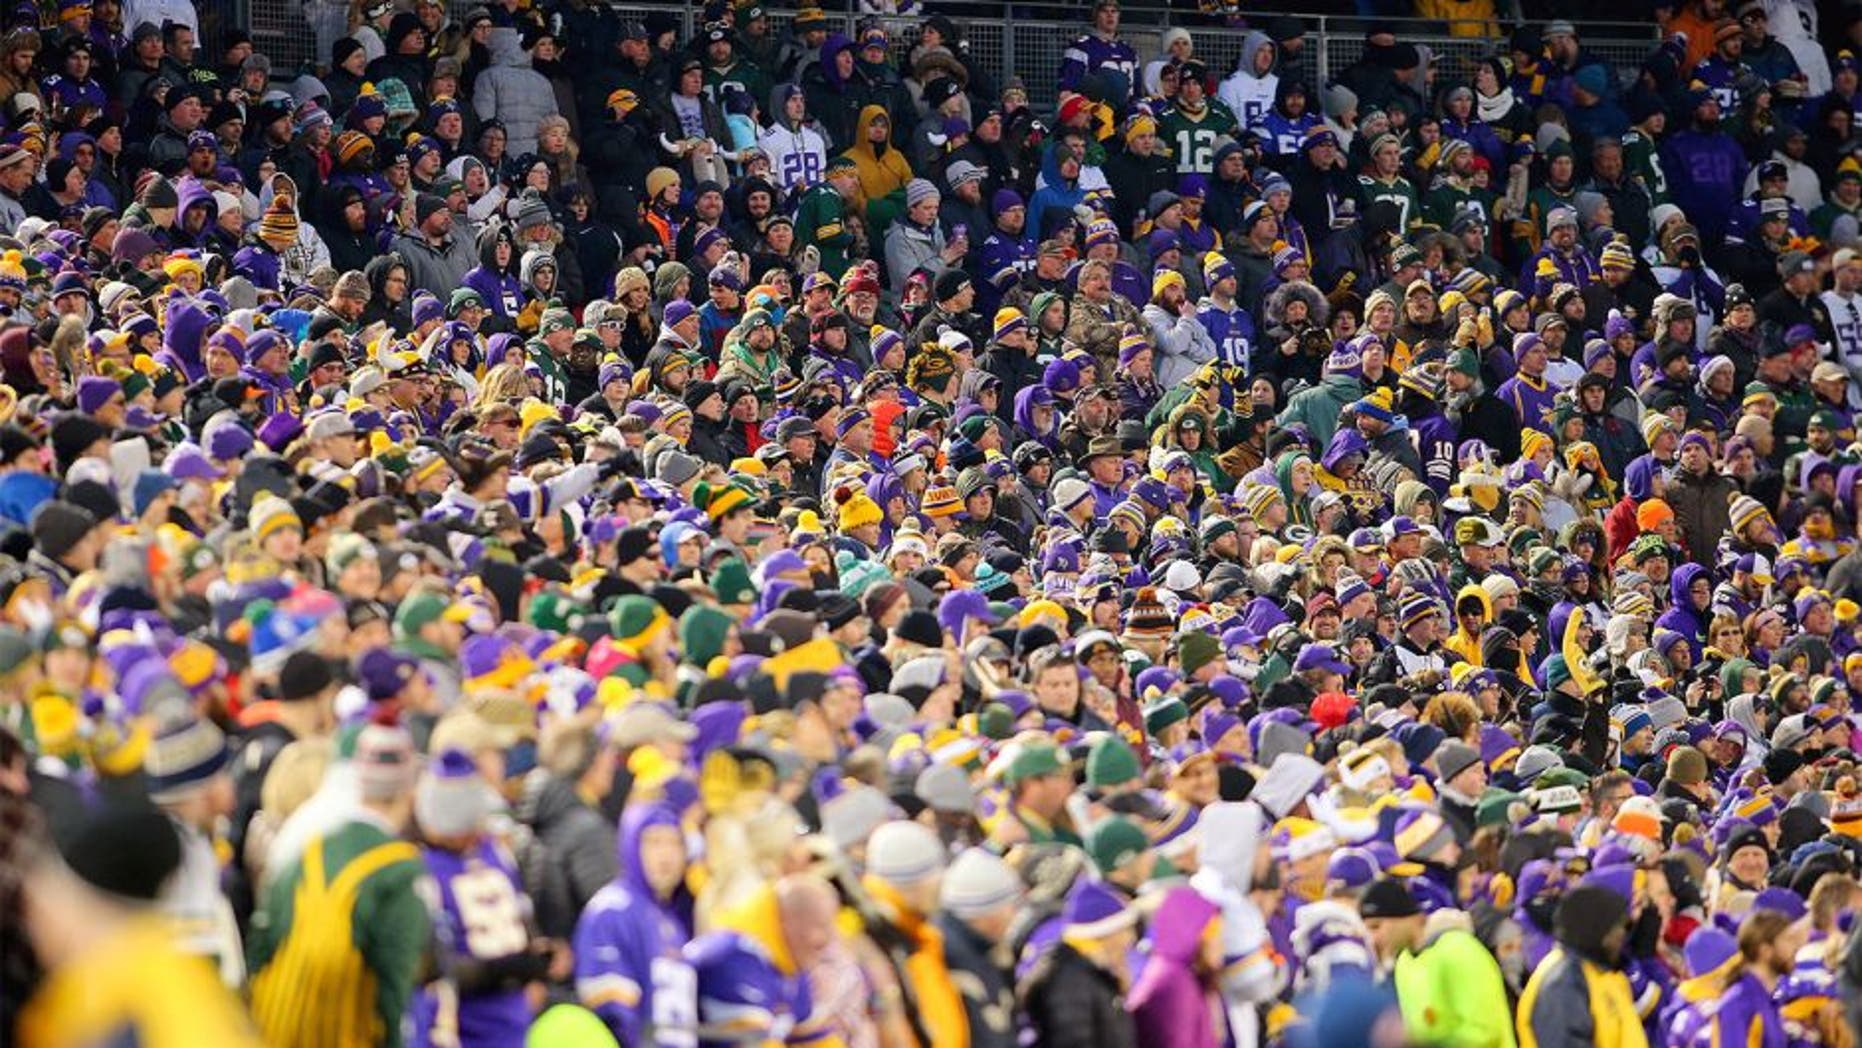 MINNEAPOLIS, MN - NOVEMBER 22: Fans in the stands watch the Minnesota Vikings against the Green Bay Packers in the second quarter on November 22, 2015 at TCF Bank Stadium in Minneapolis, Minnesota. (Photo by Adam Bettcher/Getty Images)